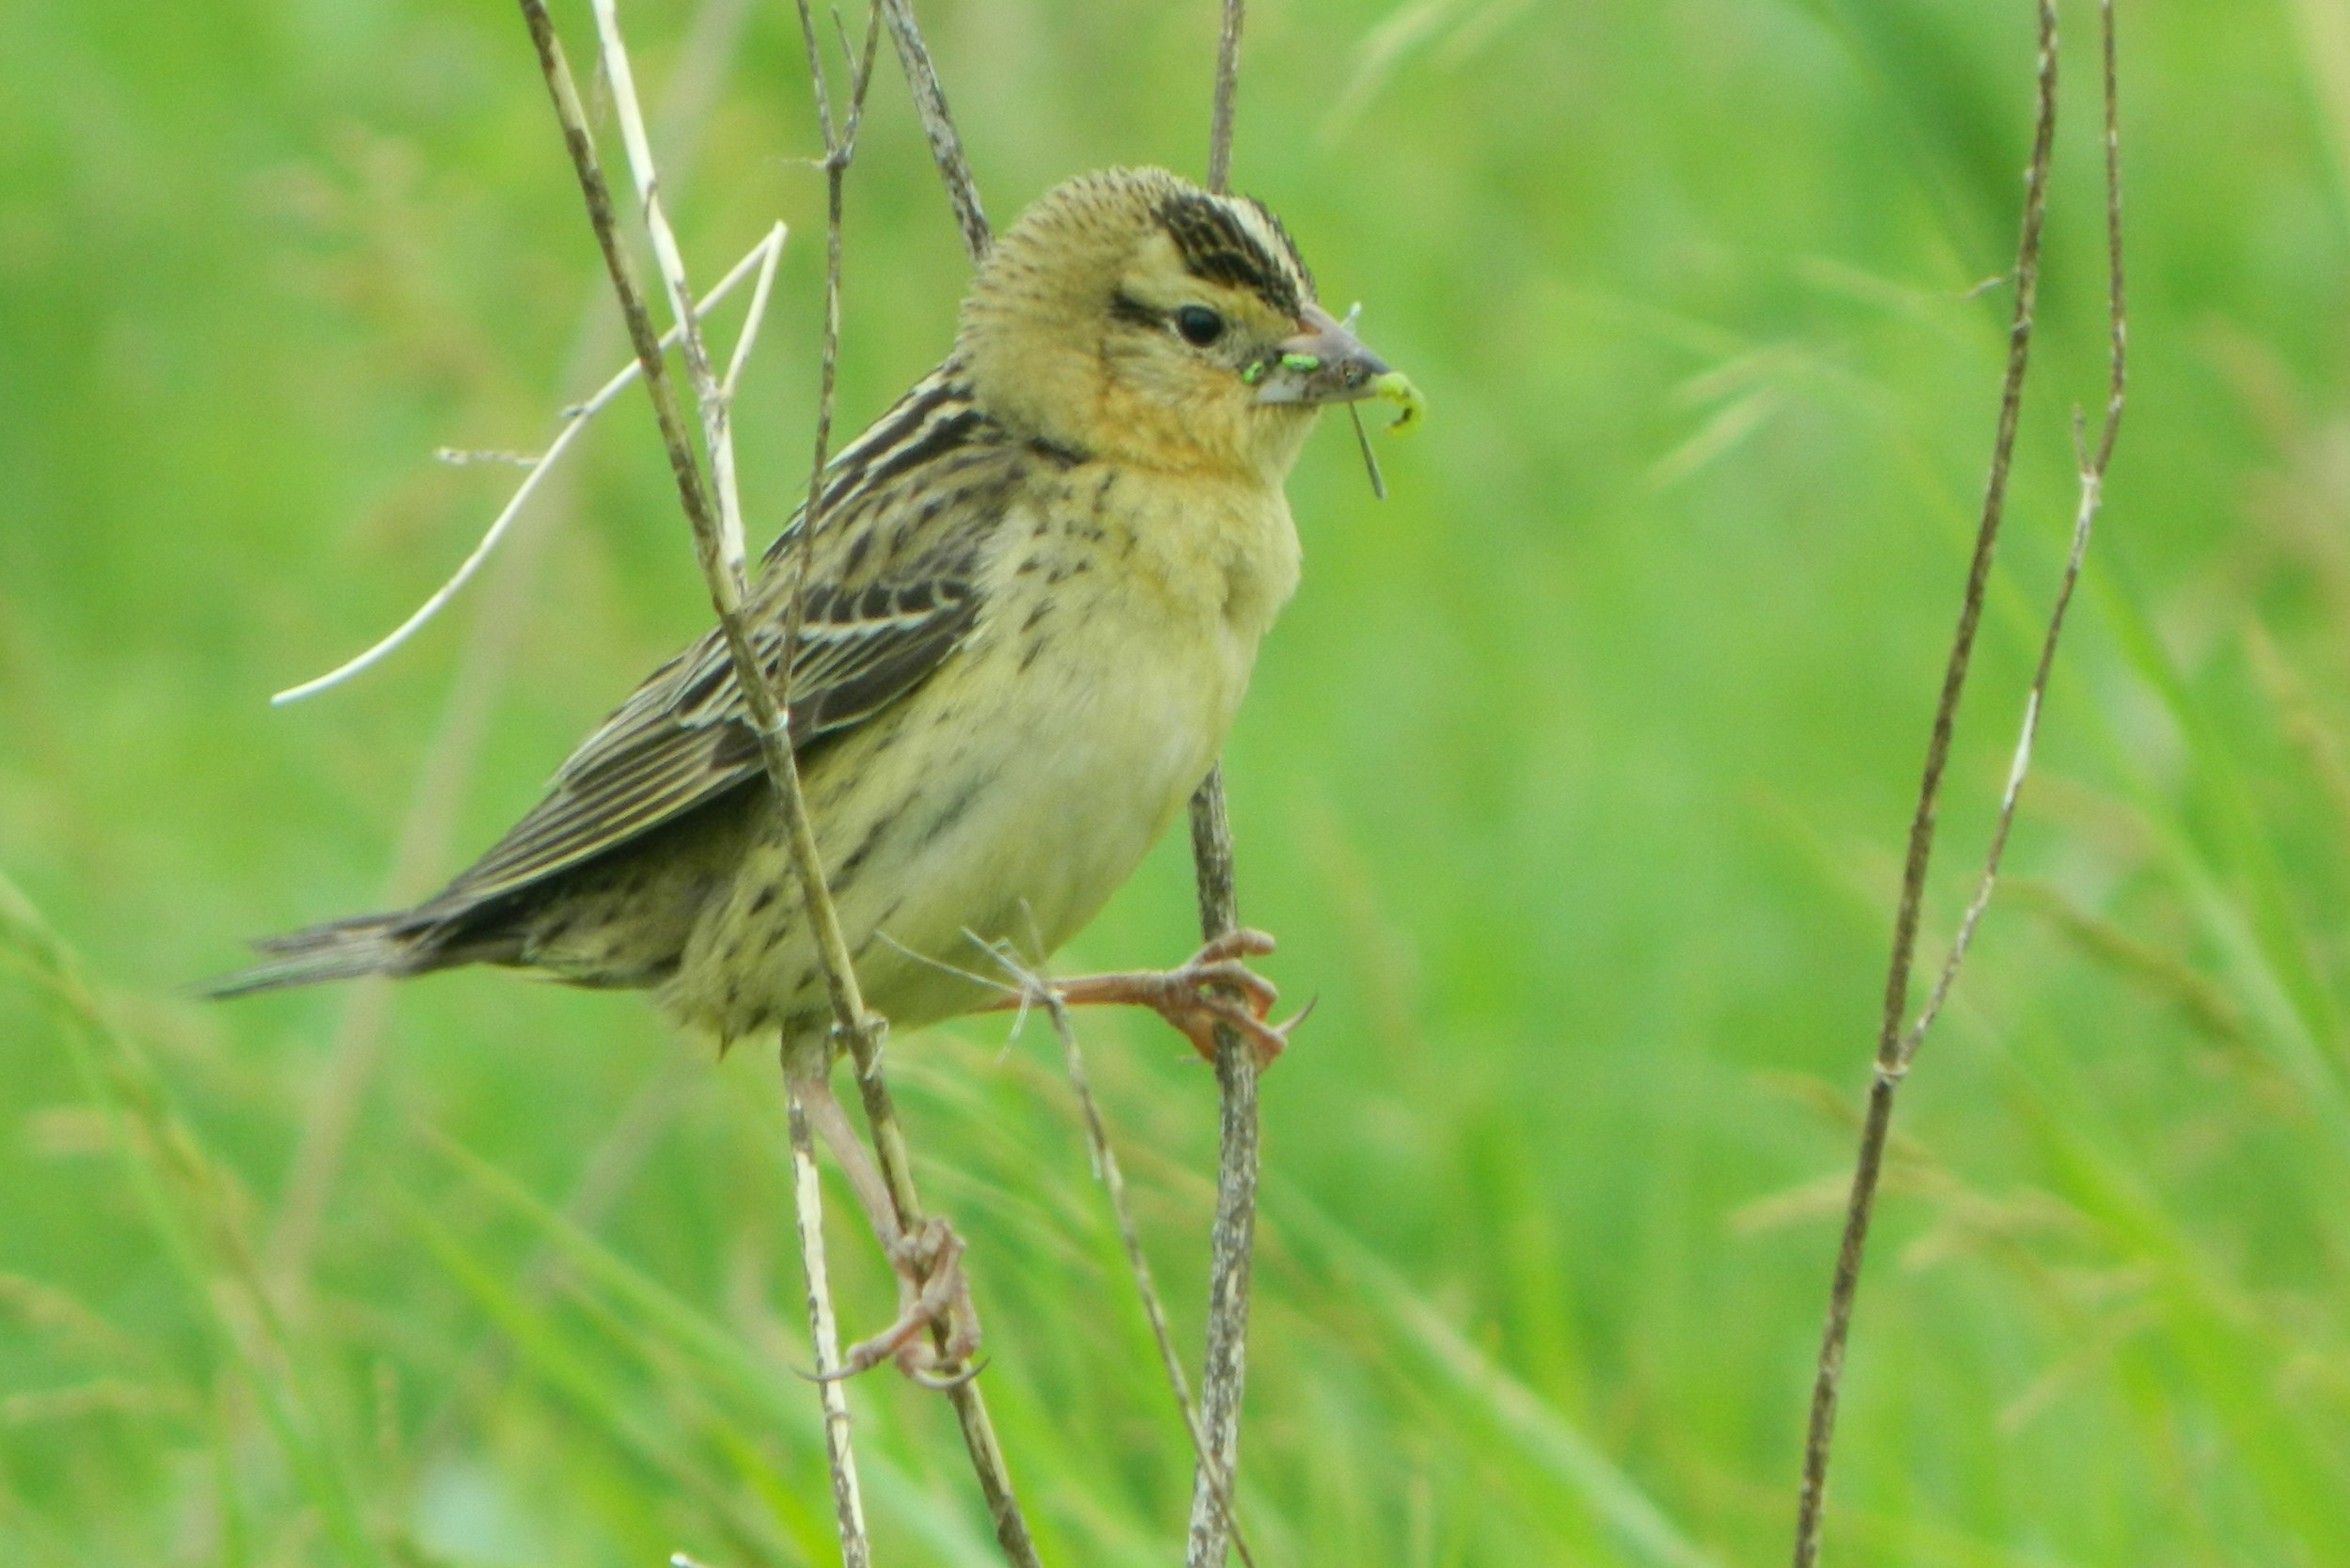 Grassland birds like this female bobolink are especially threatened by habitat loss.  Photo by Carolyn Byers